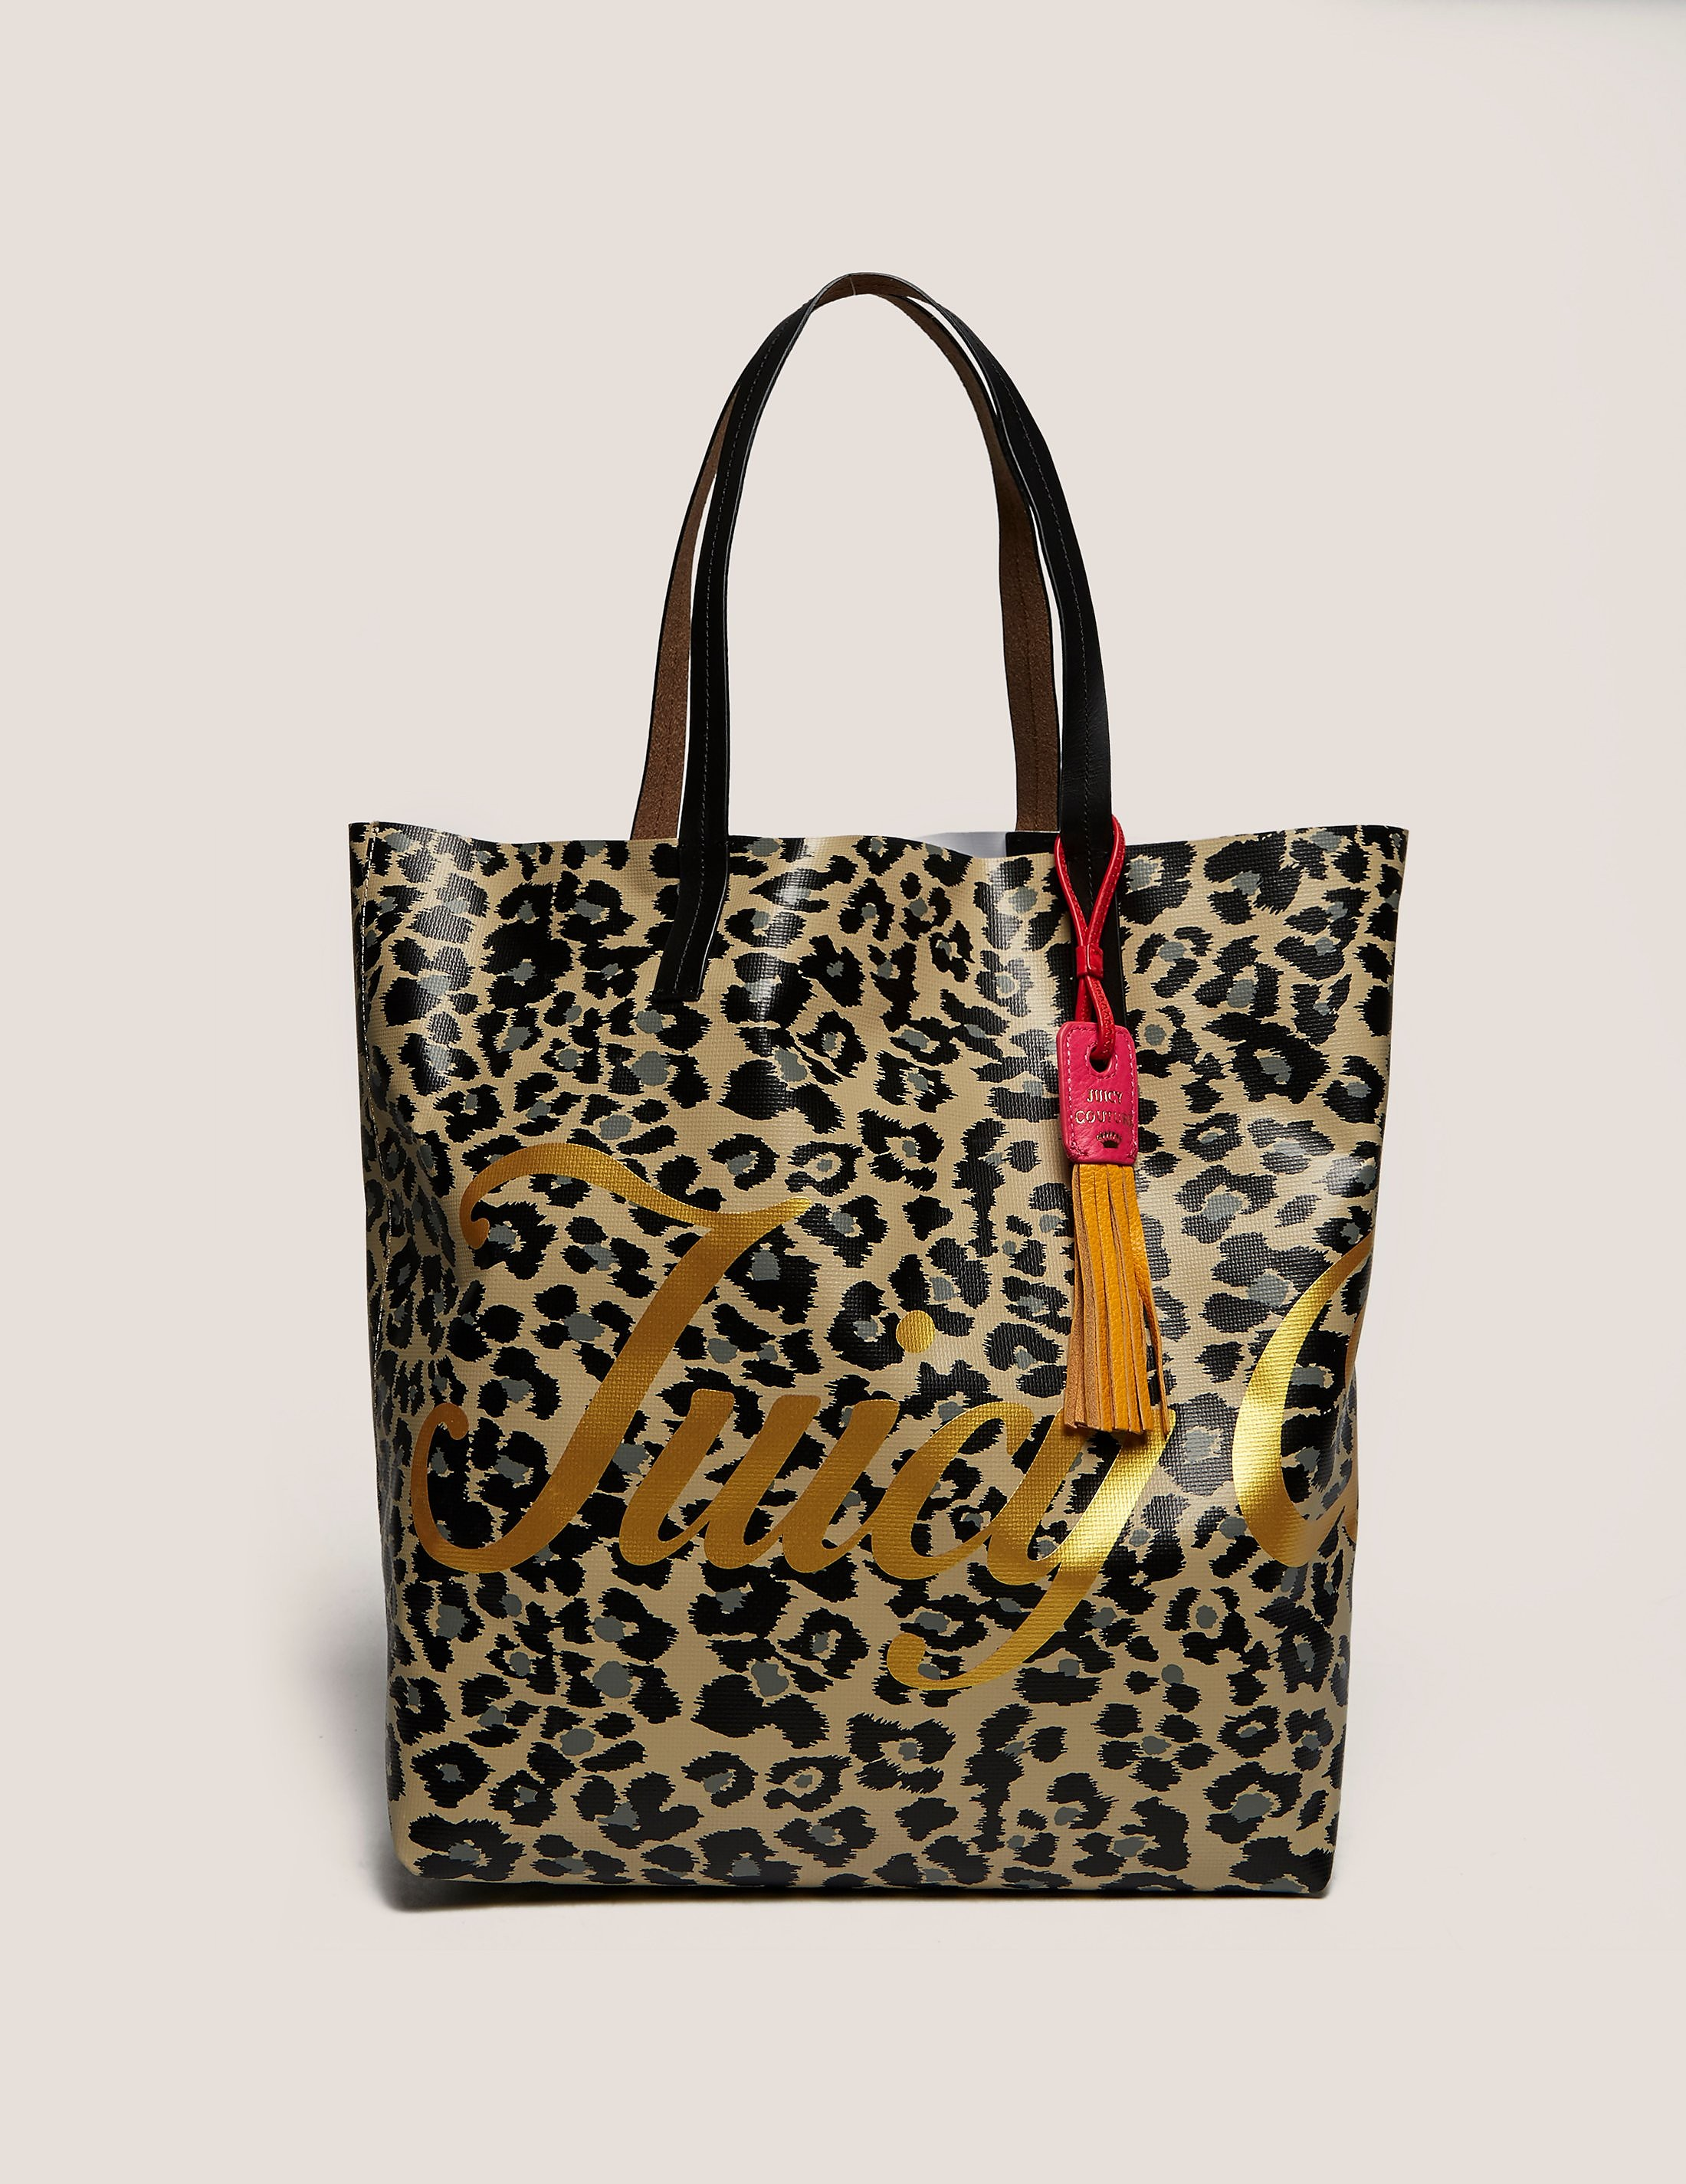 Juicy Couture Carry Me Tote